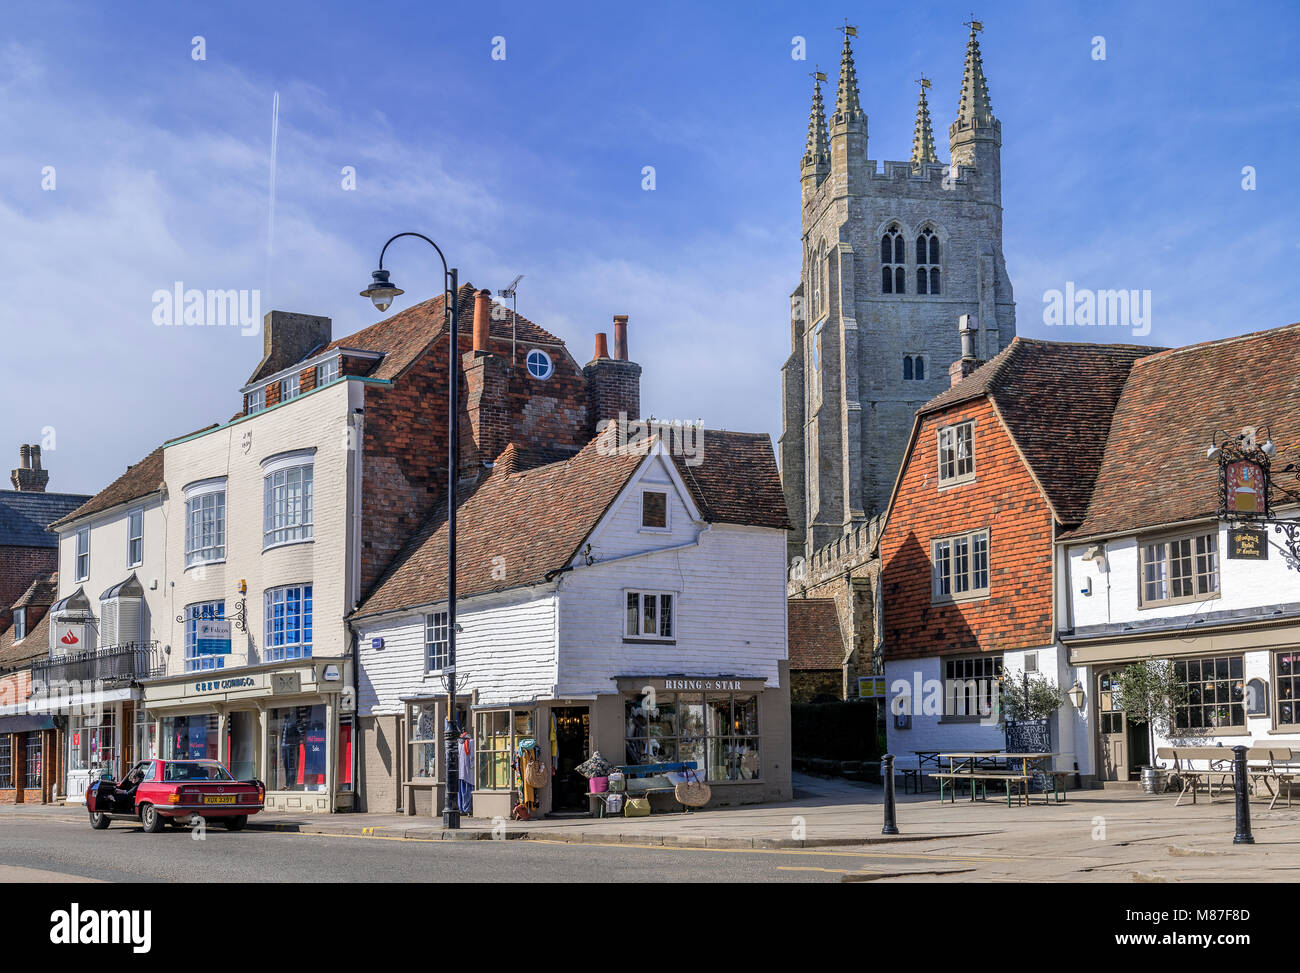 Tenterden high street with St Mildreds church dominating the skyline - Stock Image